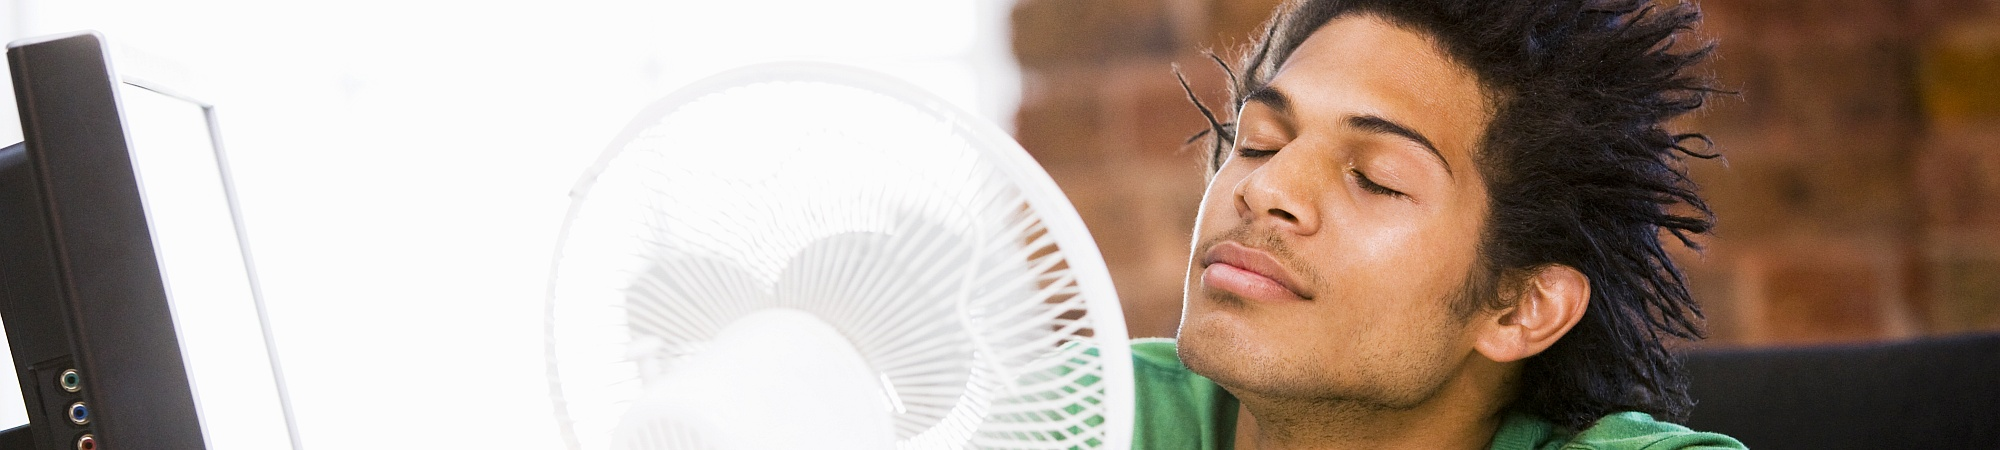 Our professional HVAC services will keep you cool and productive